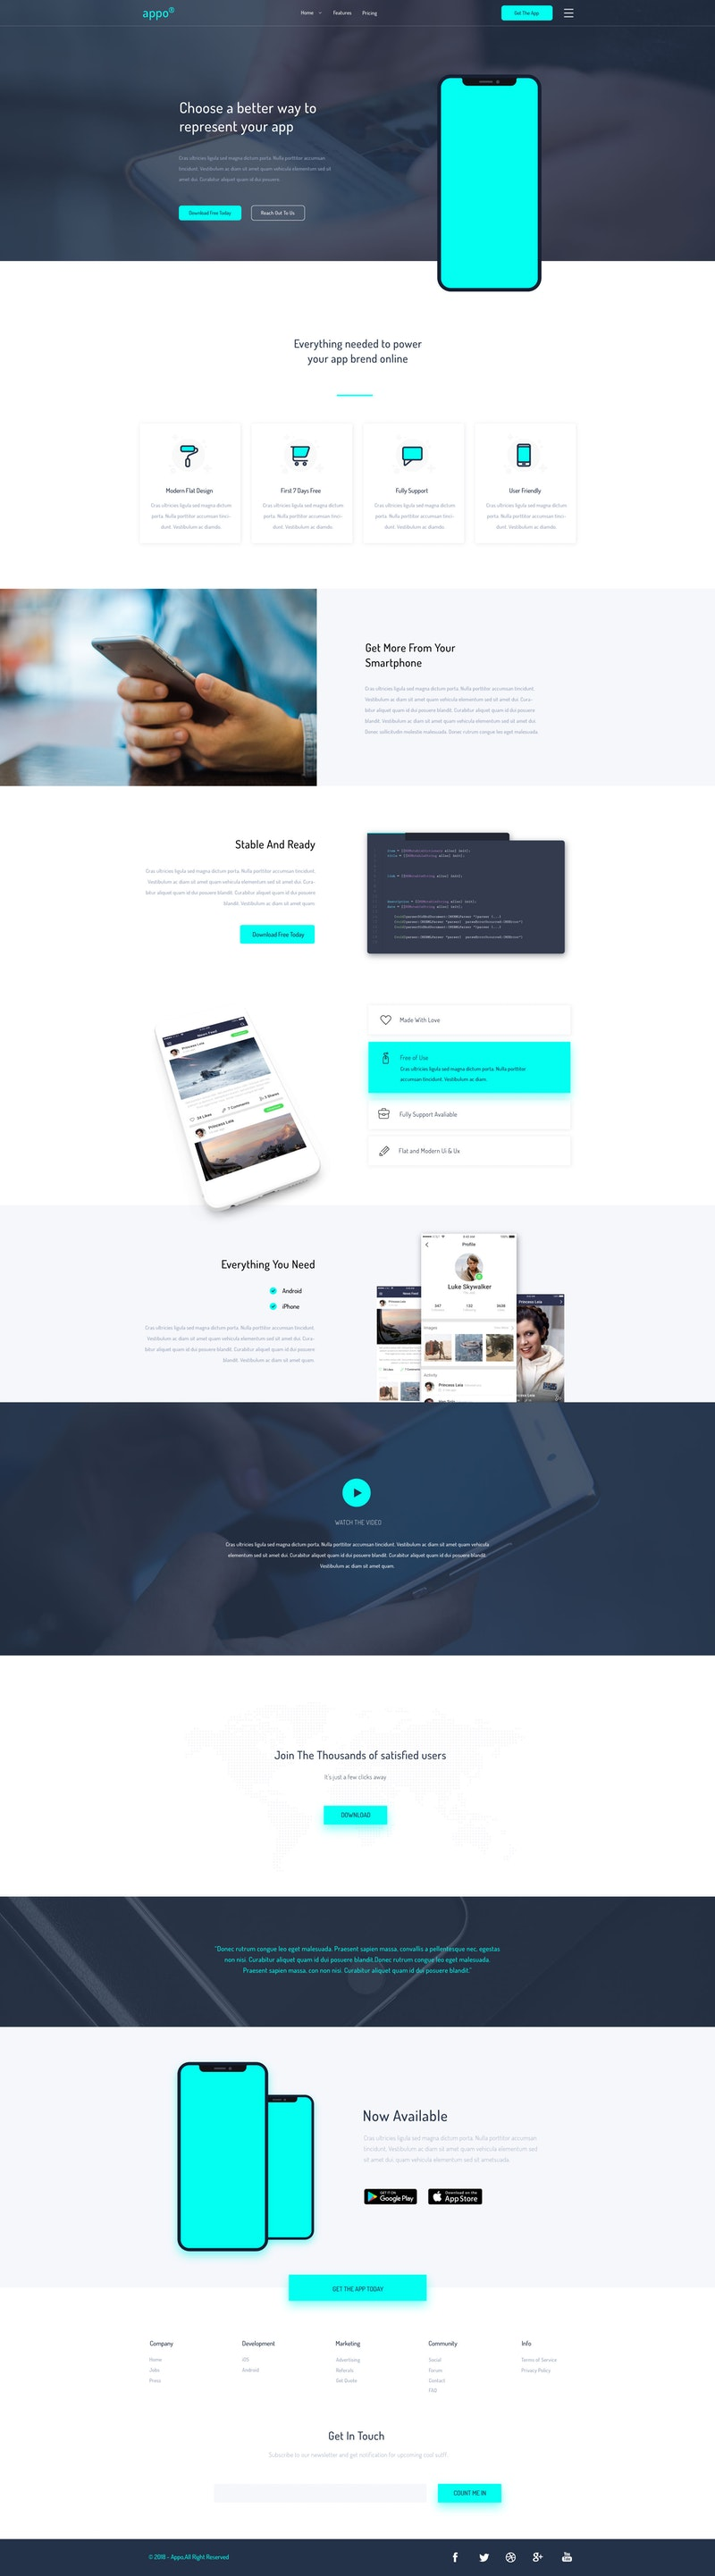 Appo - PSD Landing Page Template preview